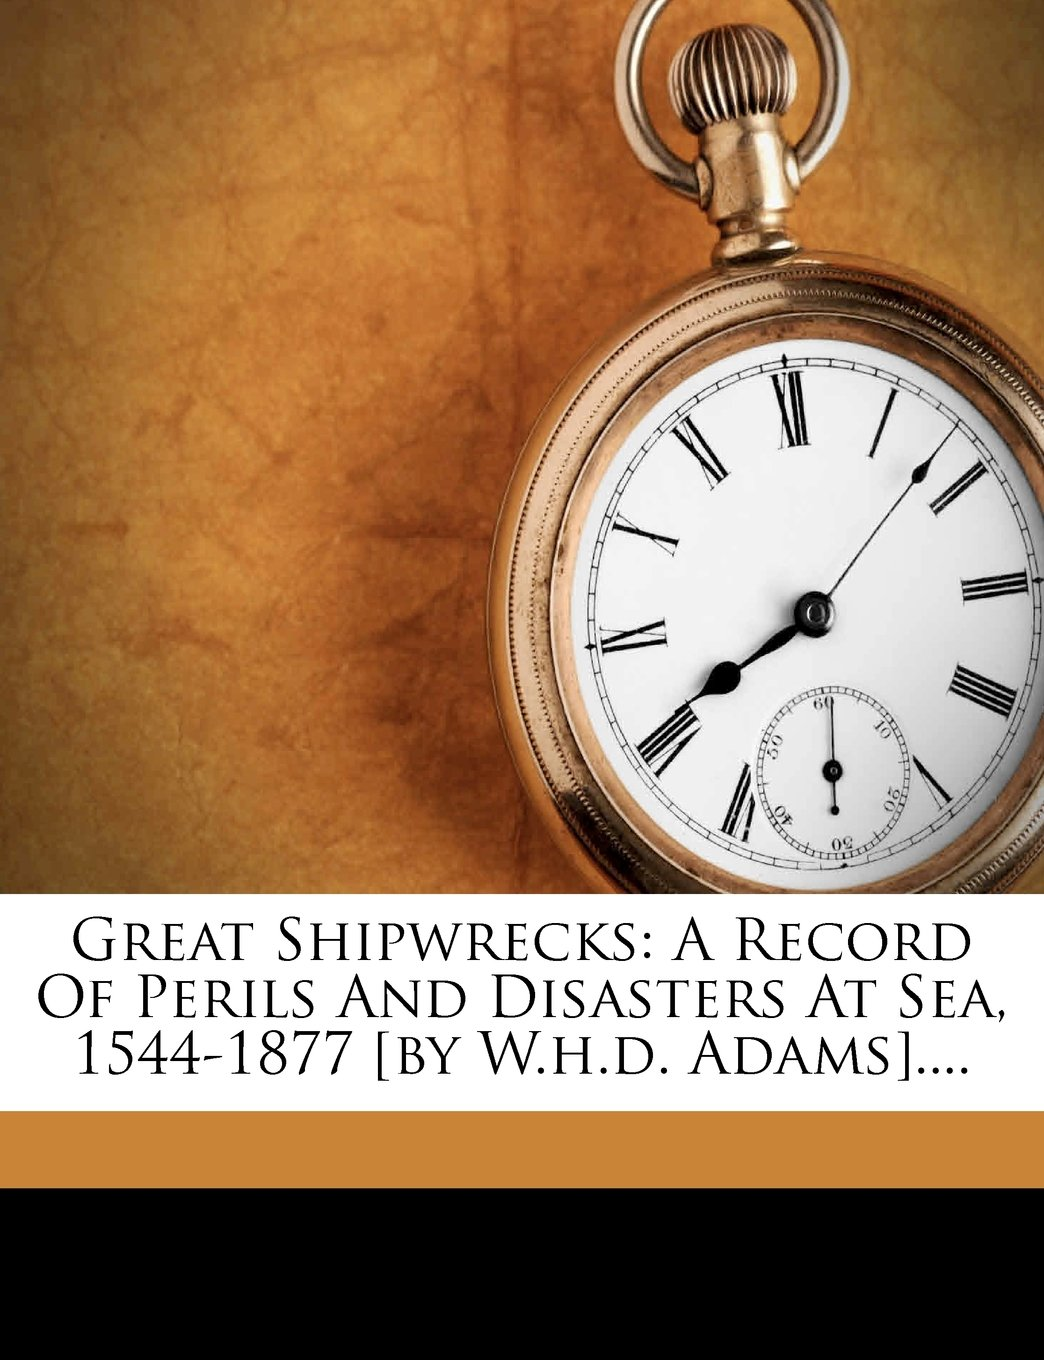 Download Great Shipwrecks: A Record Of Perils And Disasters At Sea, 1544-1877 [by W.h.d. Adams].... ebook